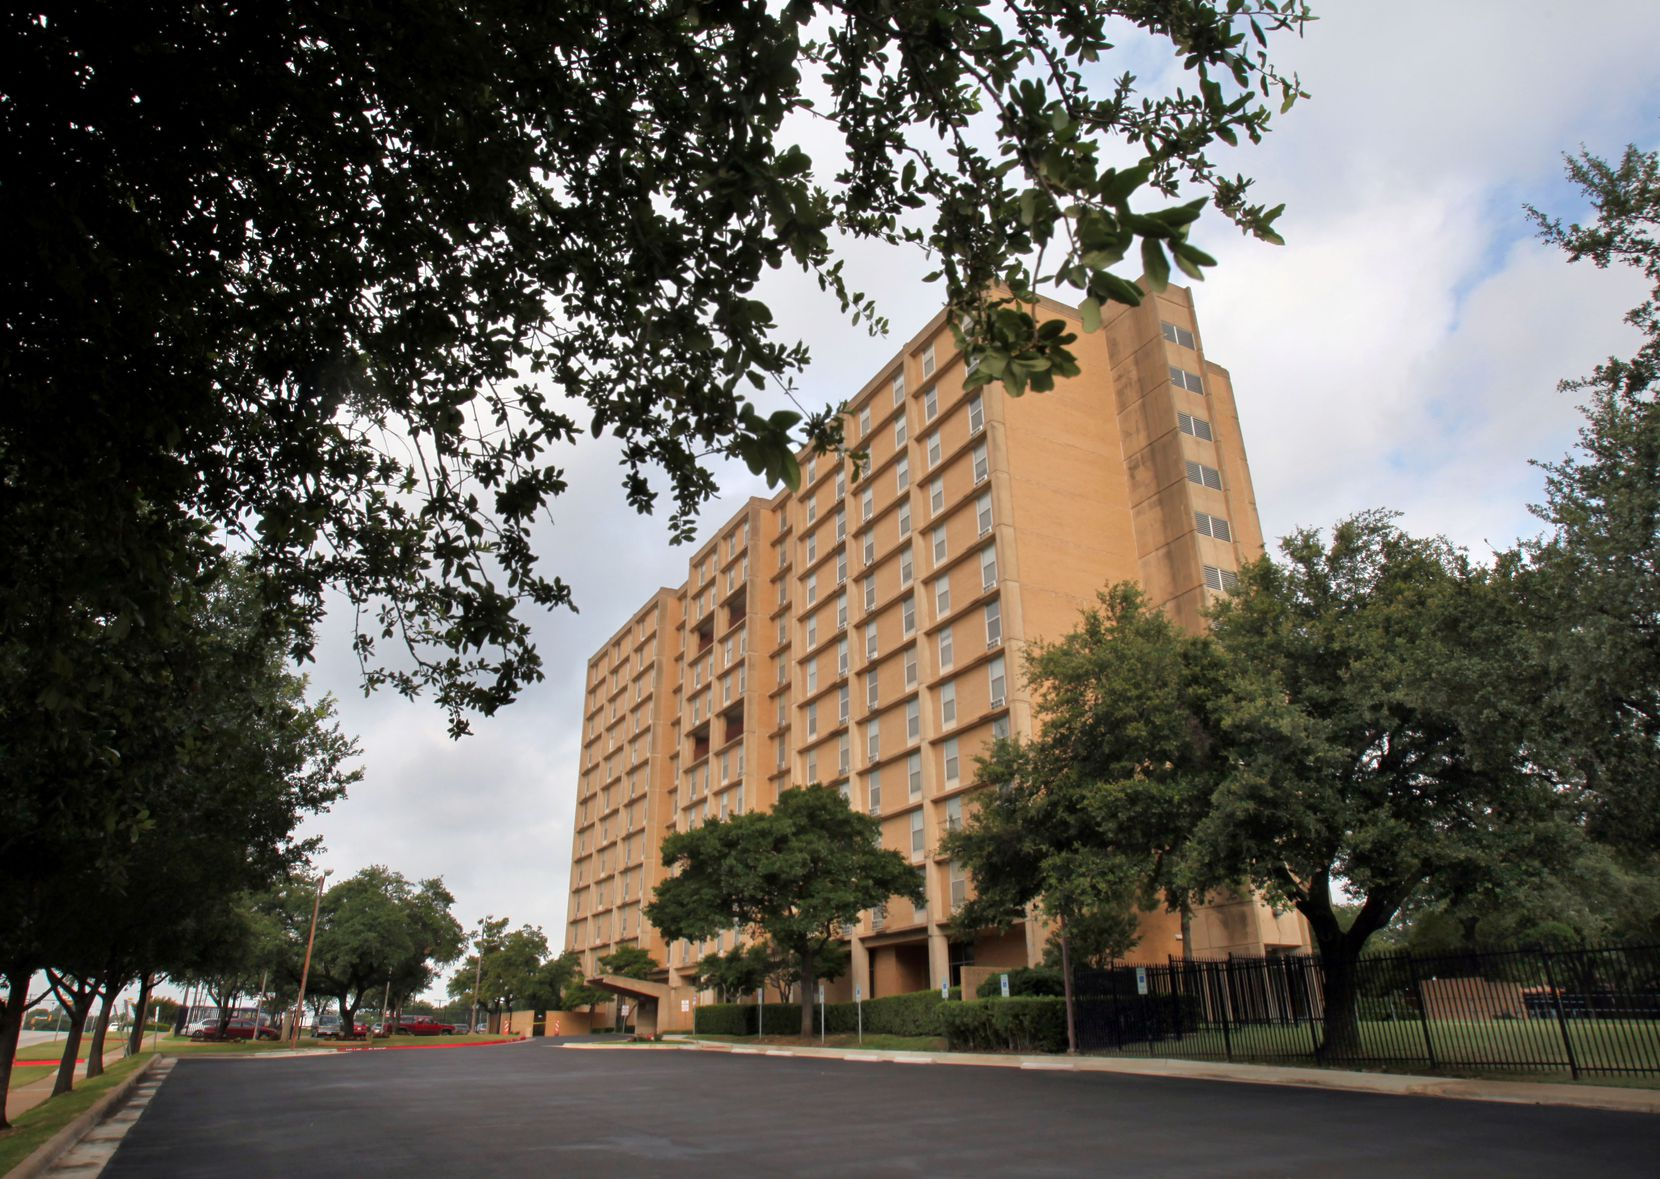 The Cliff Manor Apartments located on Fort Worth Avenue in Dallas is one of the properties the DHA has put in play.